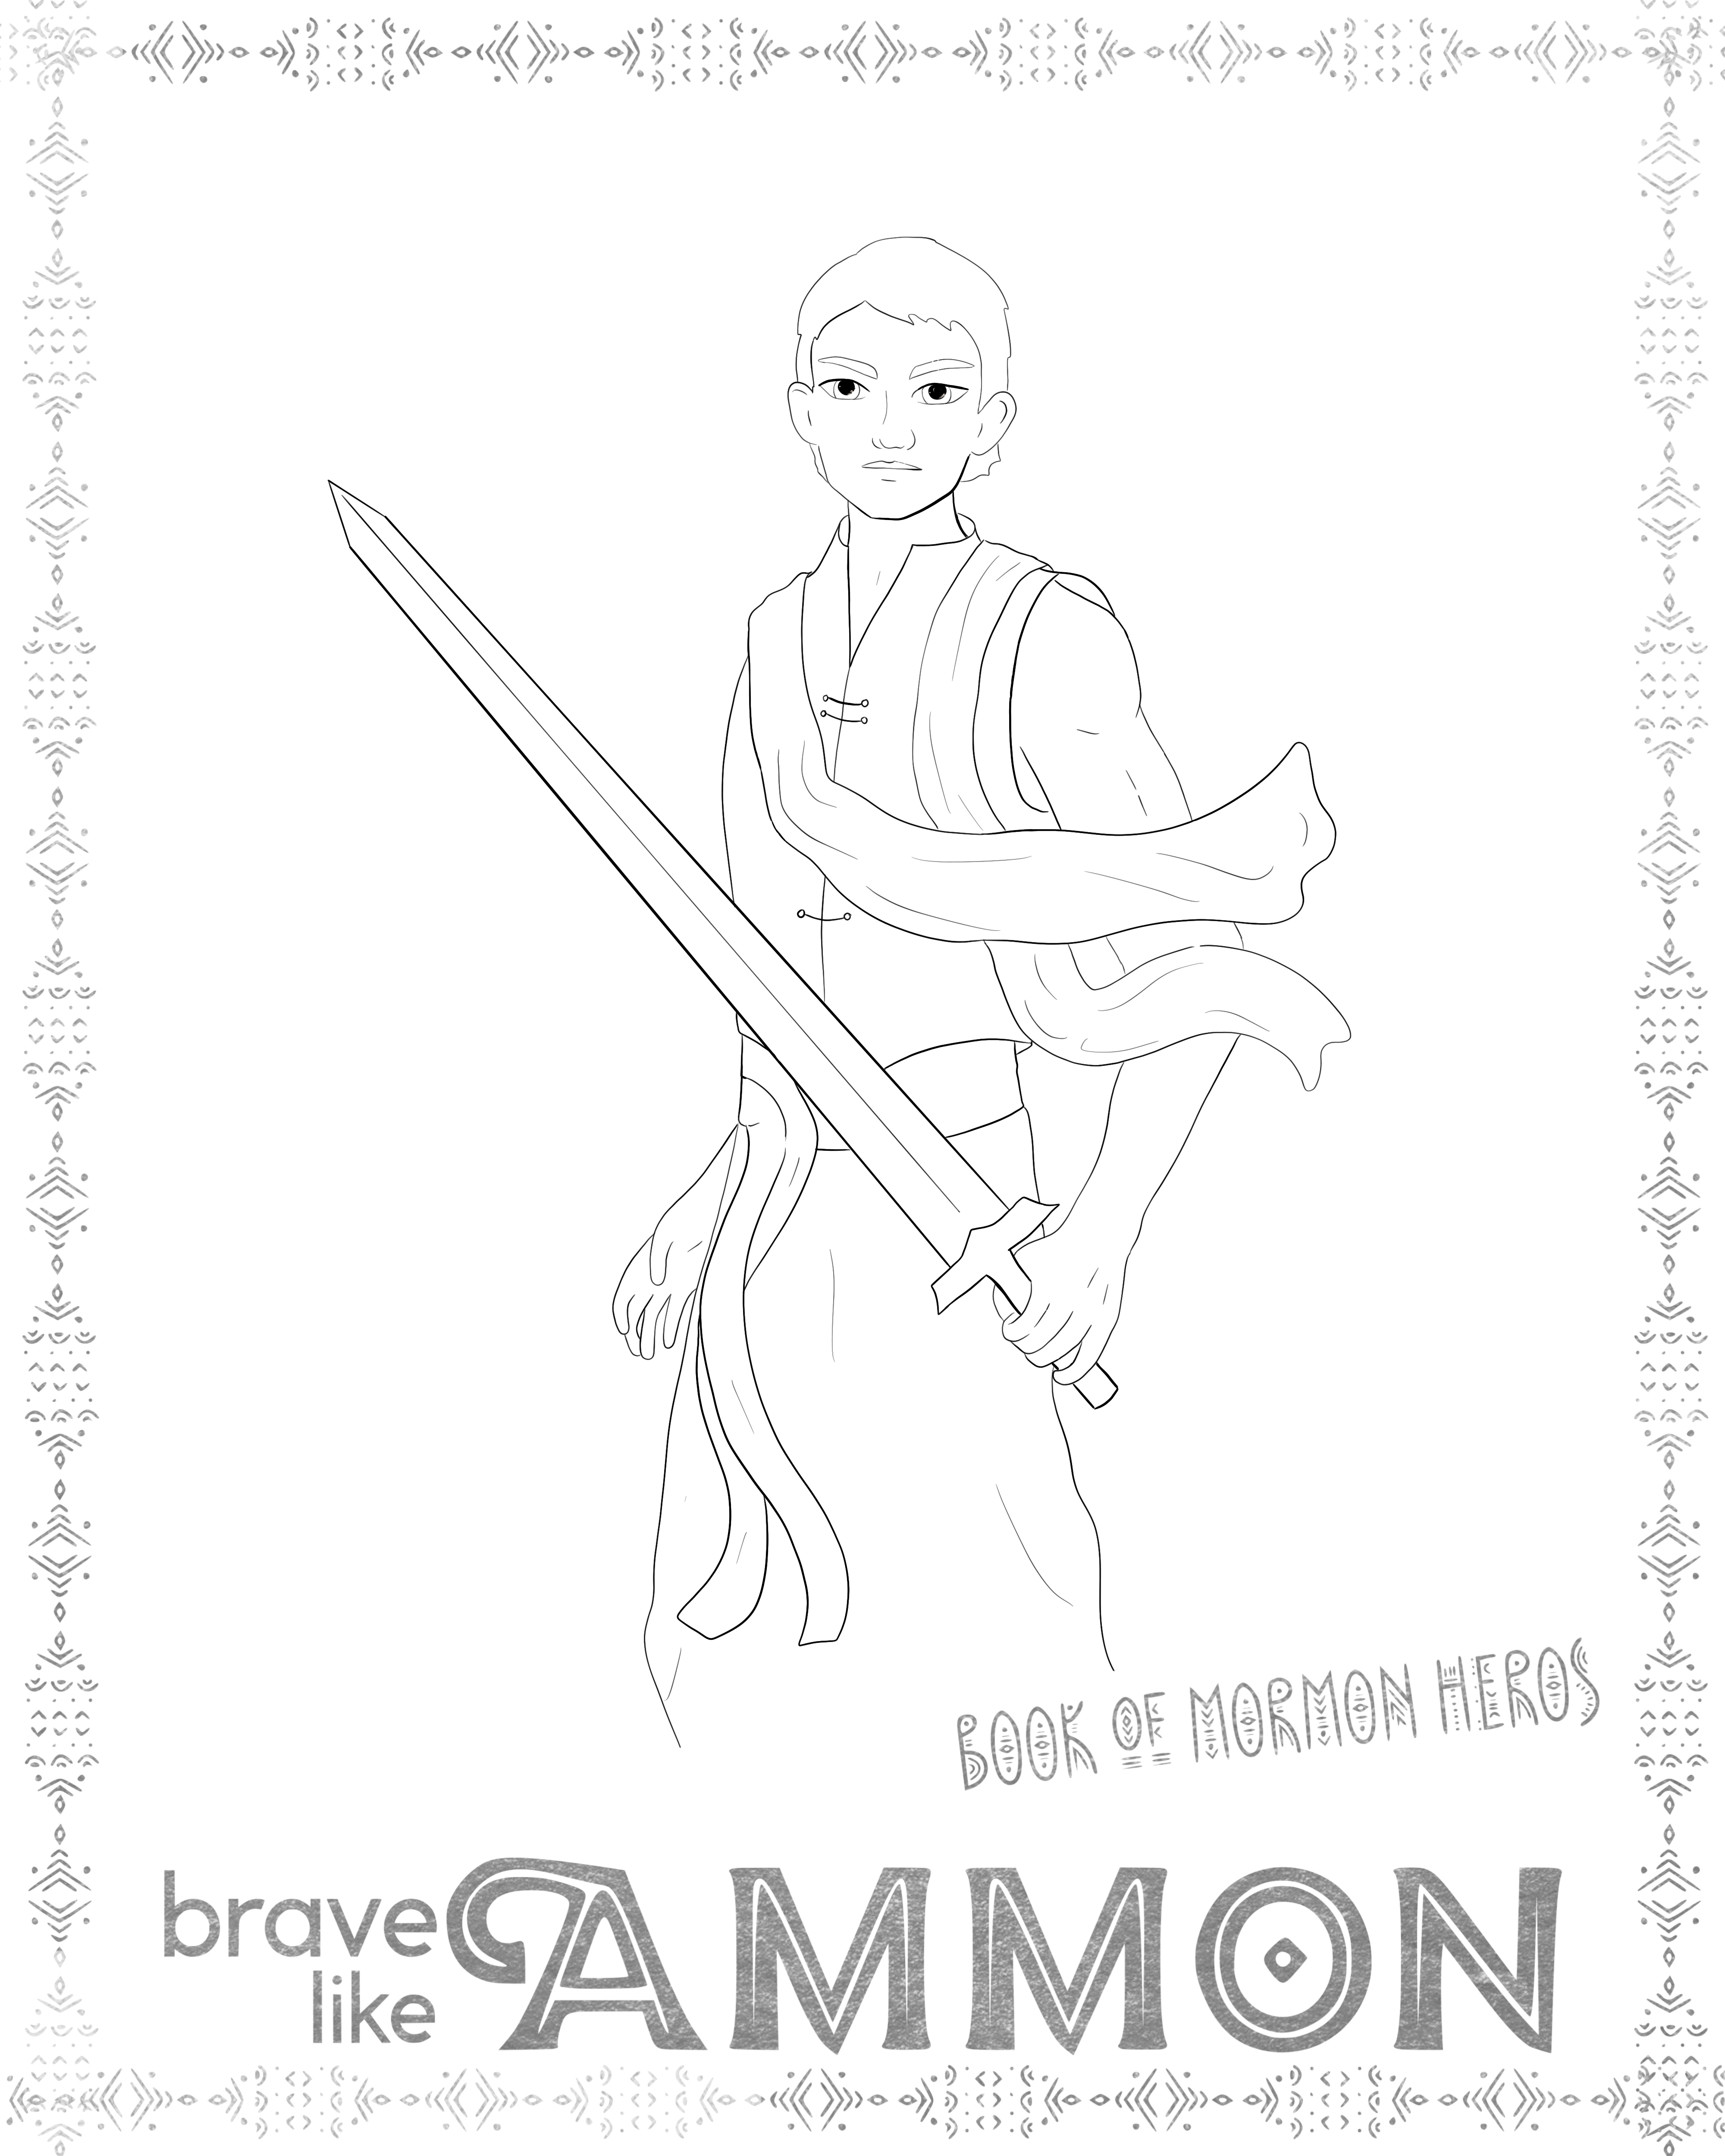 Book Of Mormon Hero Posters Coloring Pages Hero Poster Book Of